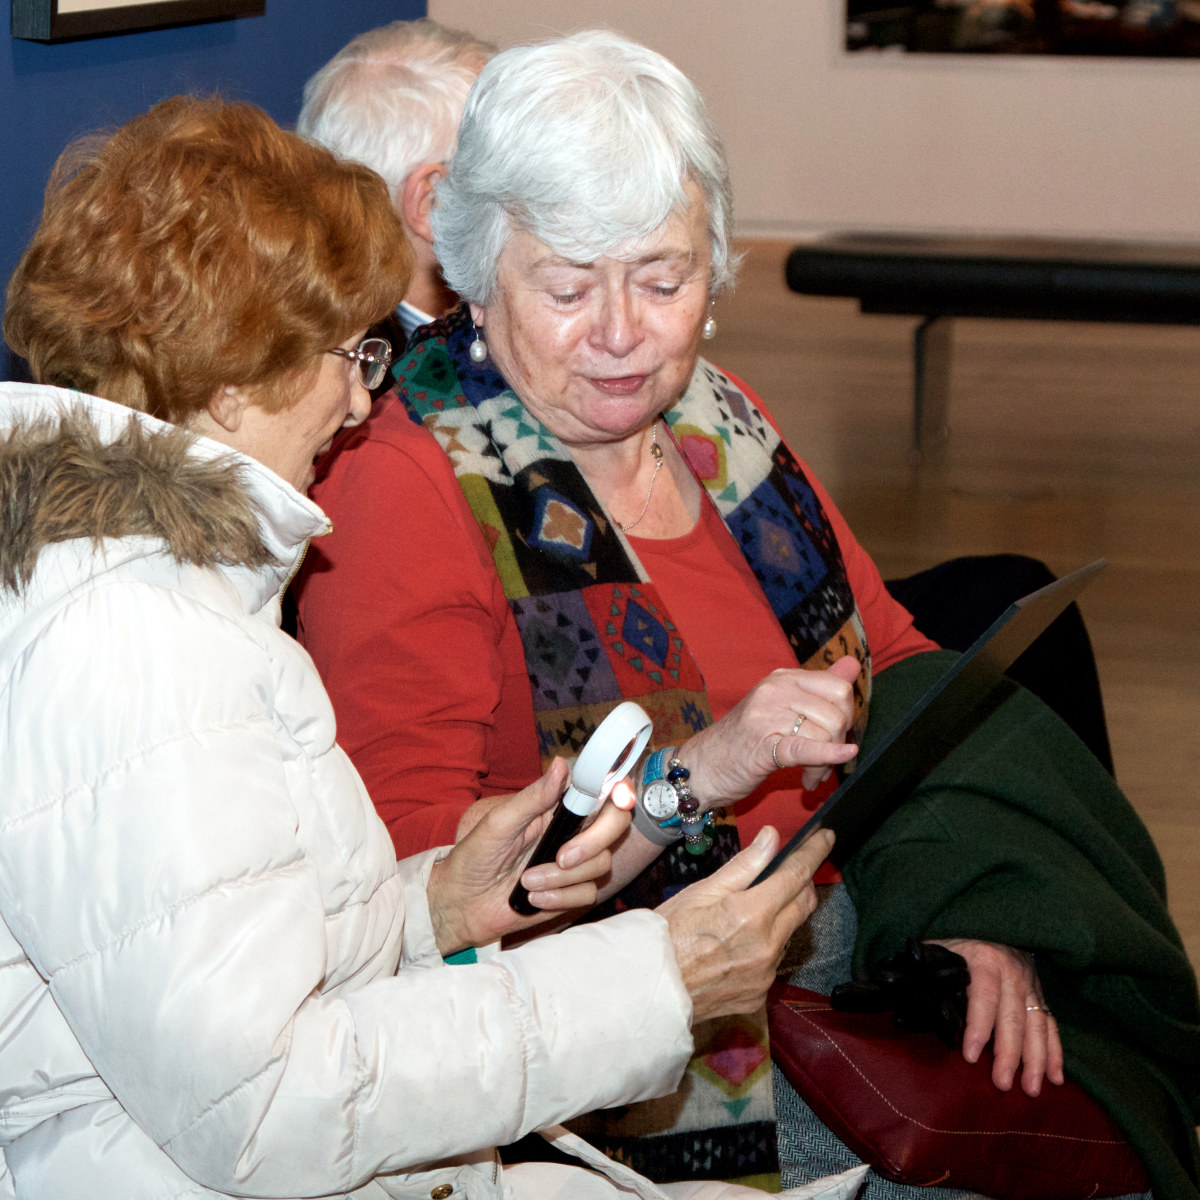 Two members of the Henshaws Group explore colour copies of artworks at a described tour of an exhibition at Gallery Oldham